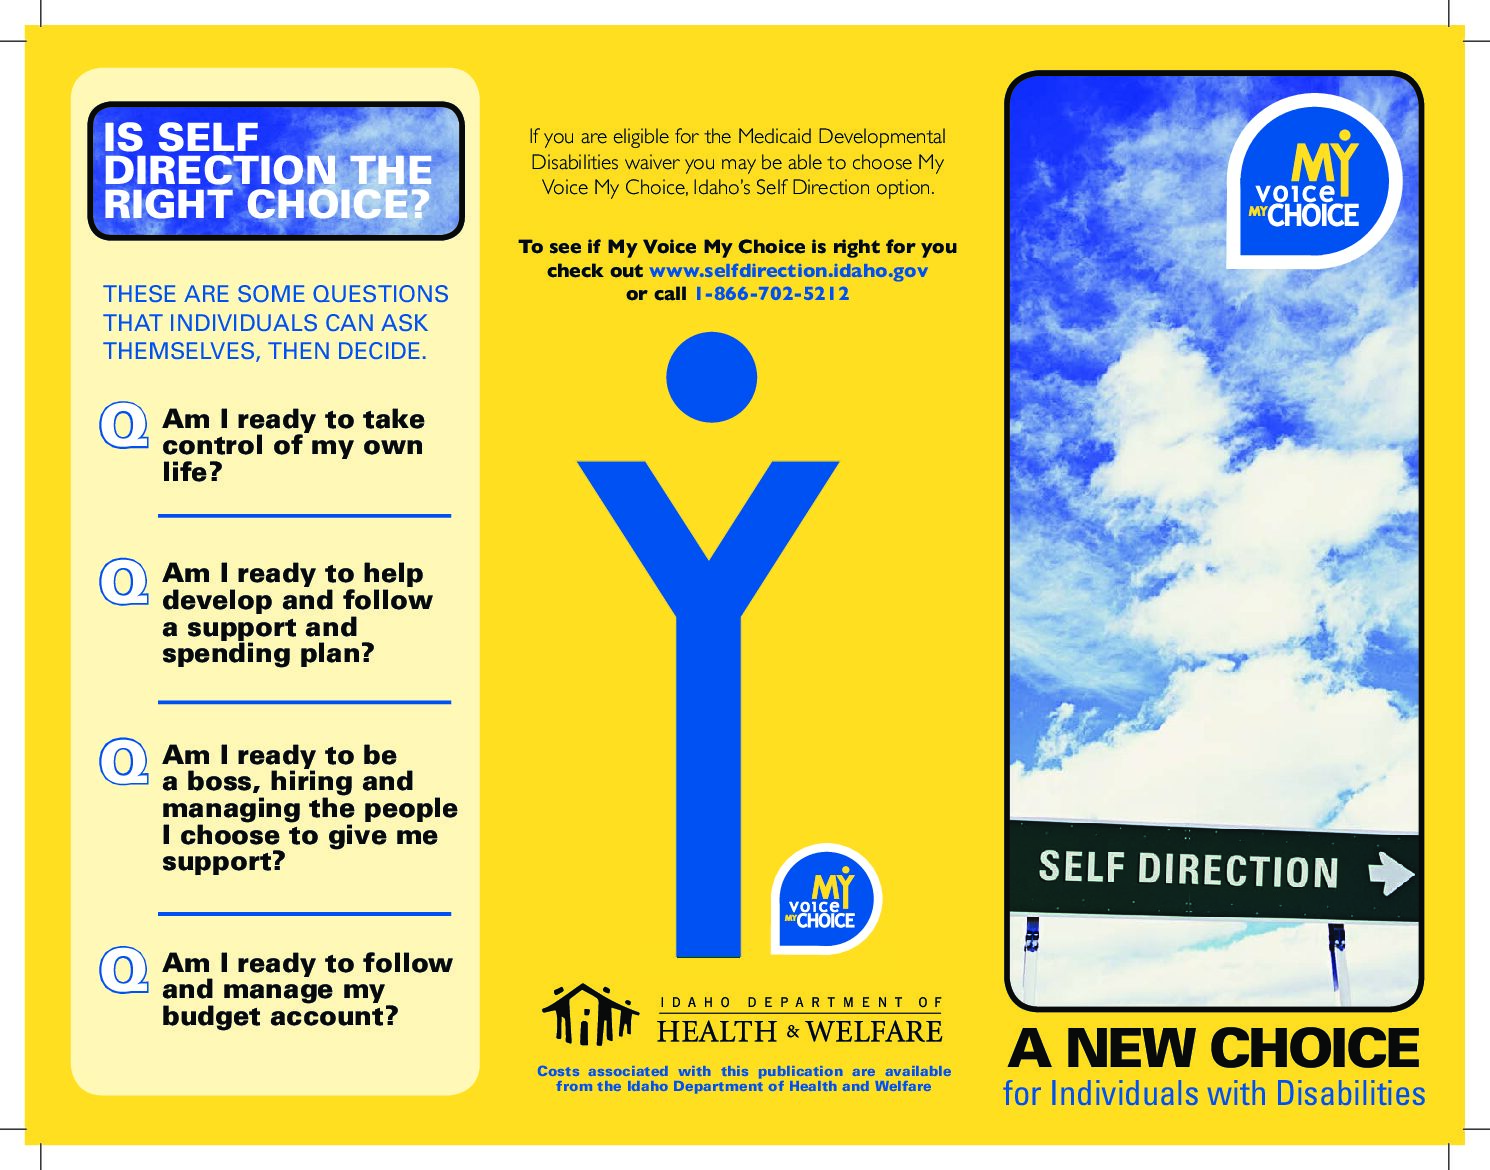 My Voice My Choice – A New Choice for Individuals with Disabilities